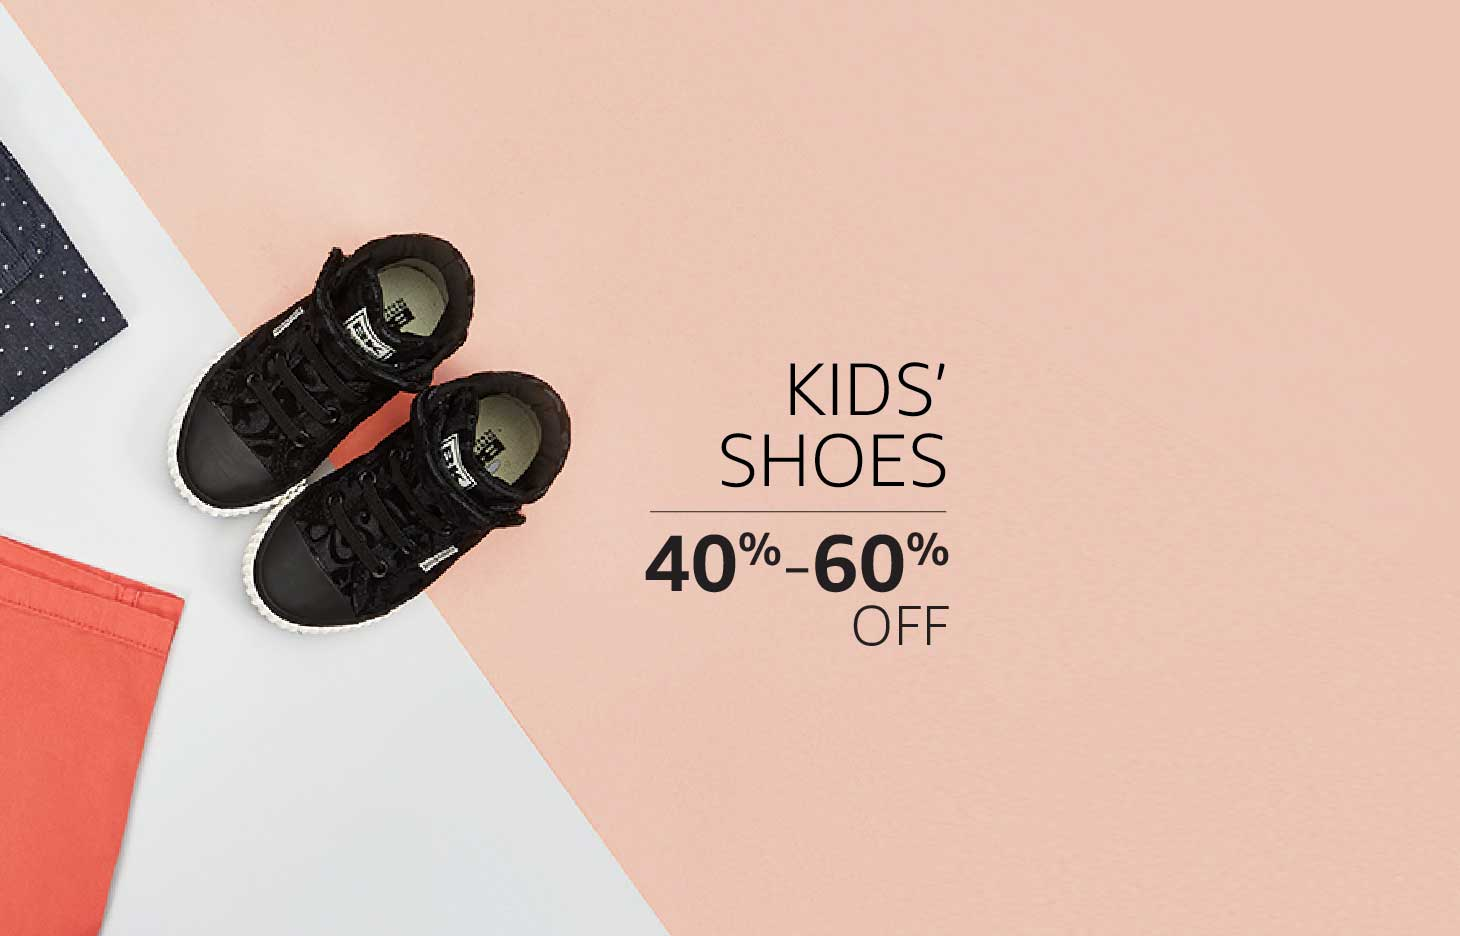 Kids' Shoes: 40% to 60% off